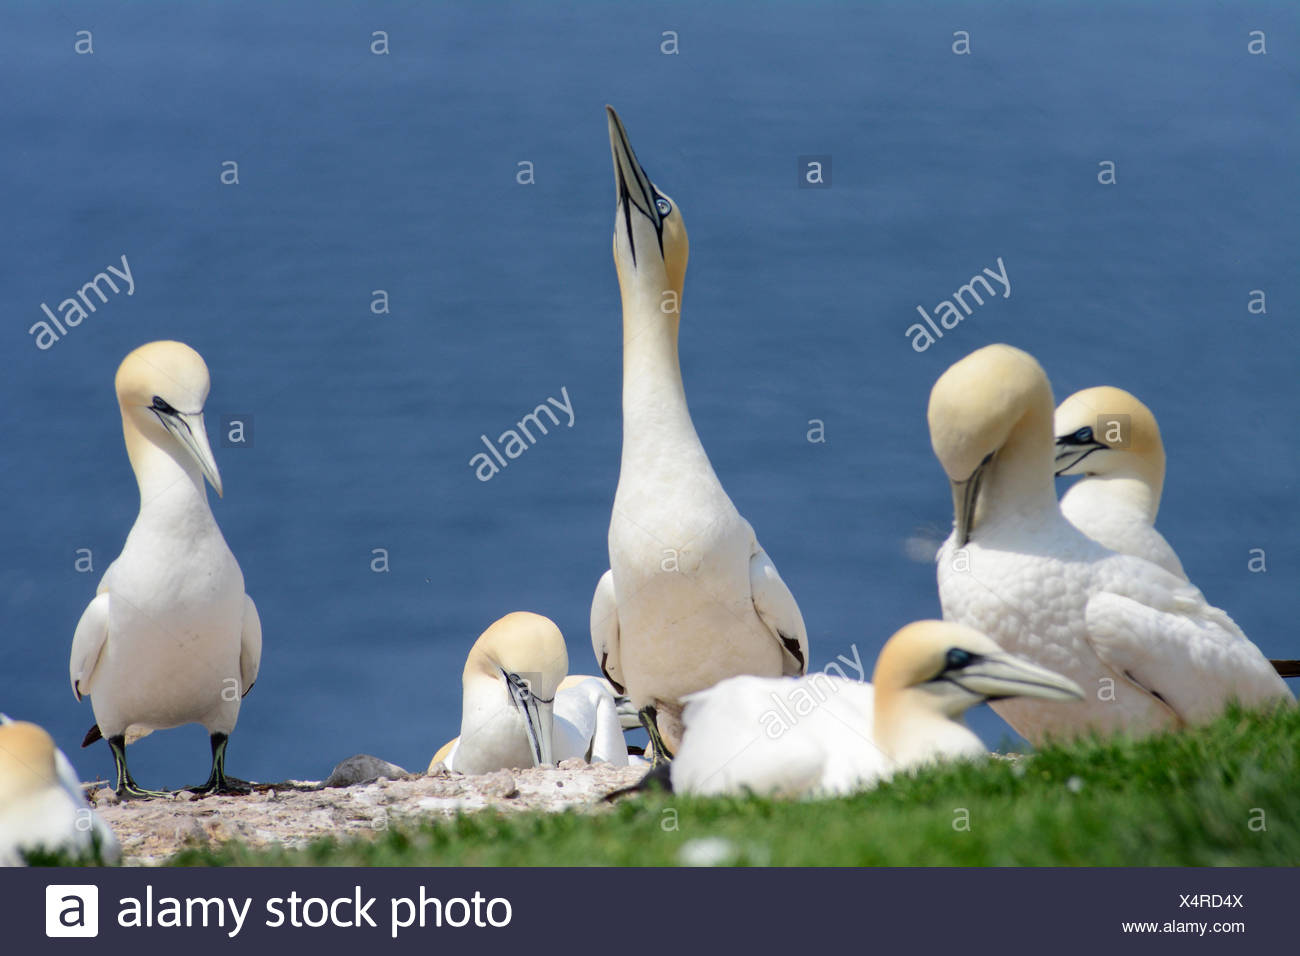 A northern gannet near the edge of its breeding colony raises its head preparing to fly. - Stock Image